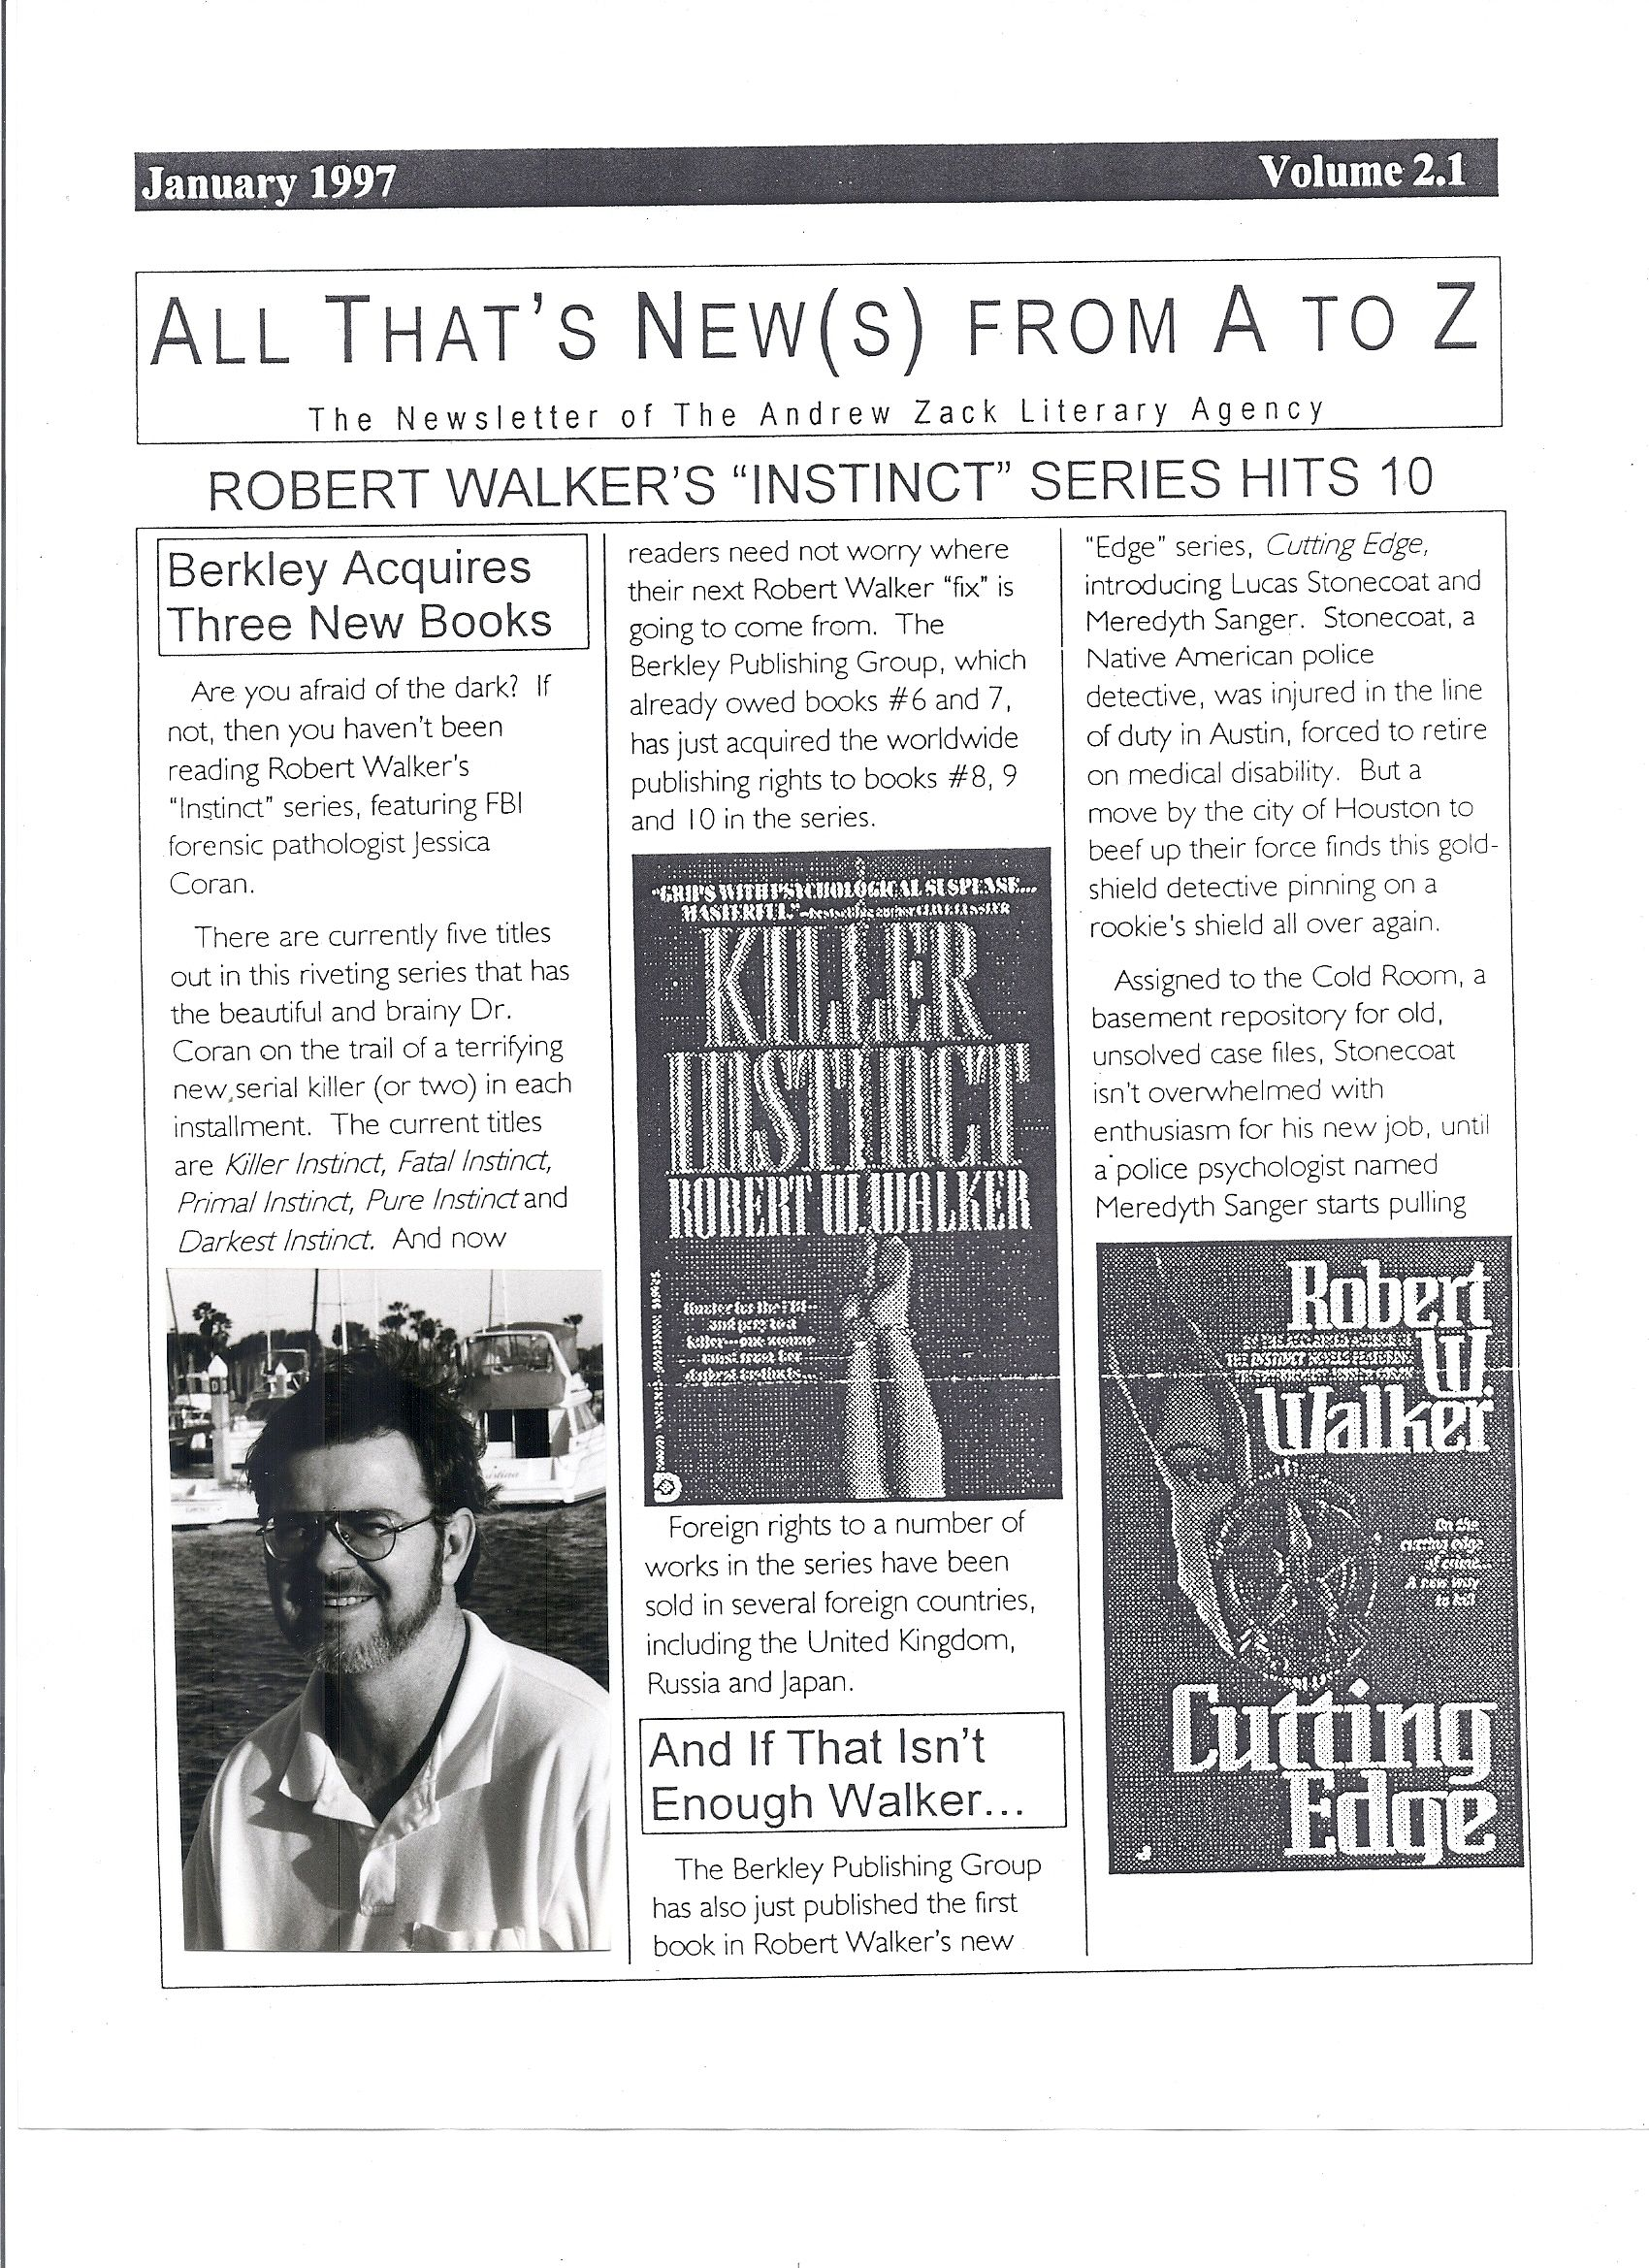 Photo of an earlier time...when I was publishing with Berkley